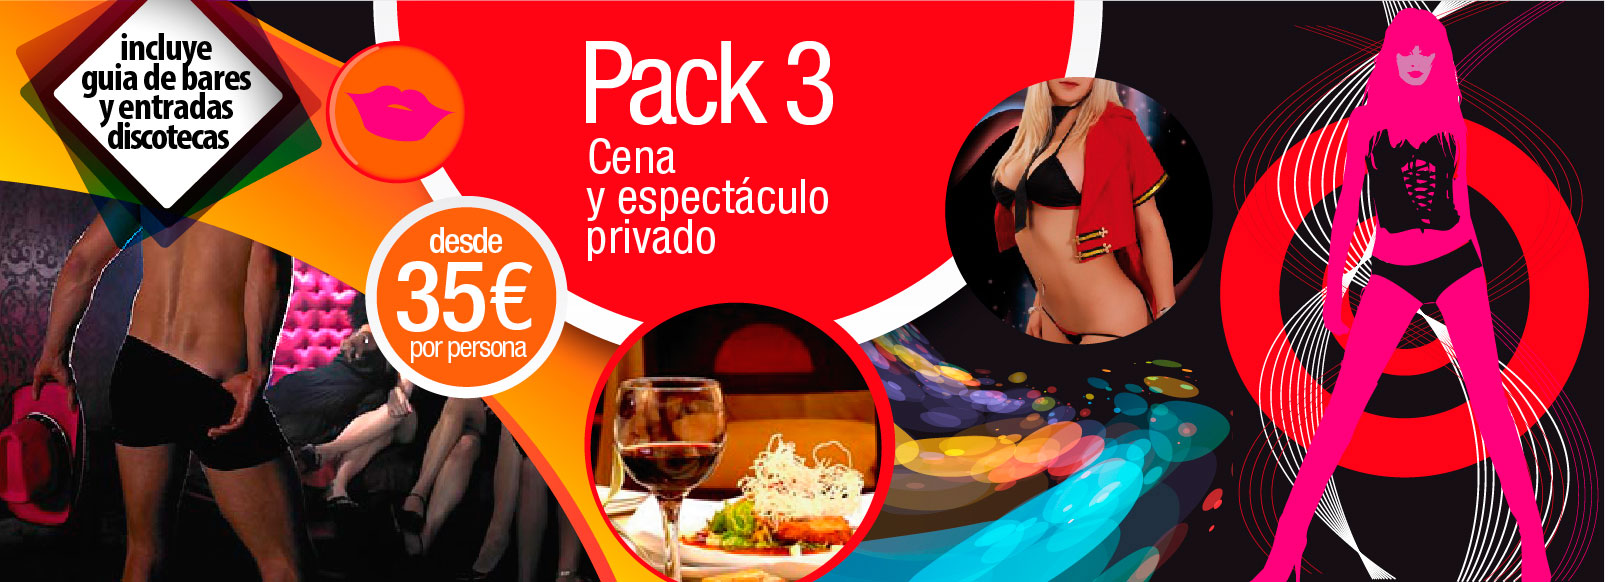 Pack 3: cena con espectaculo privado